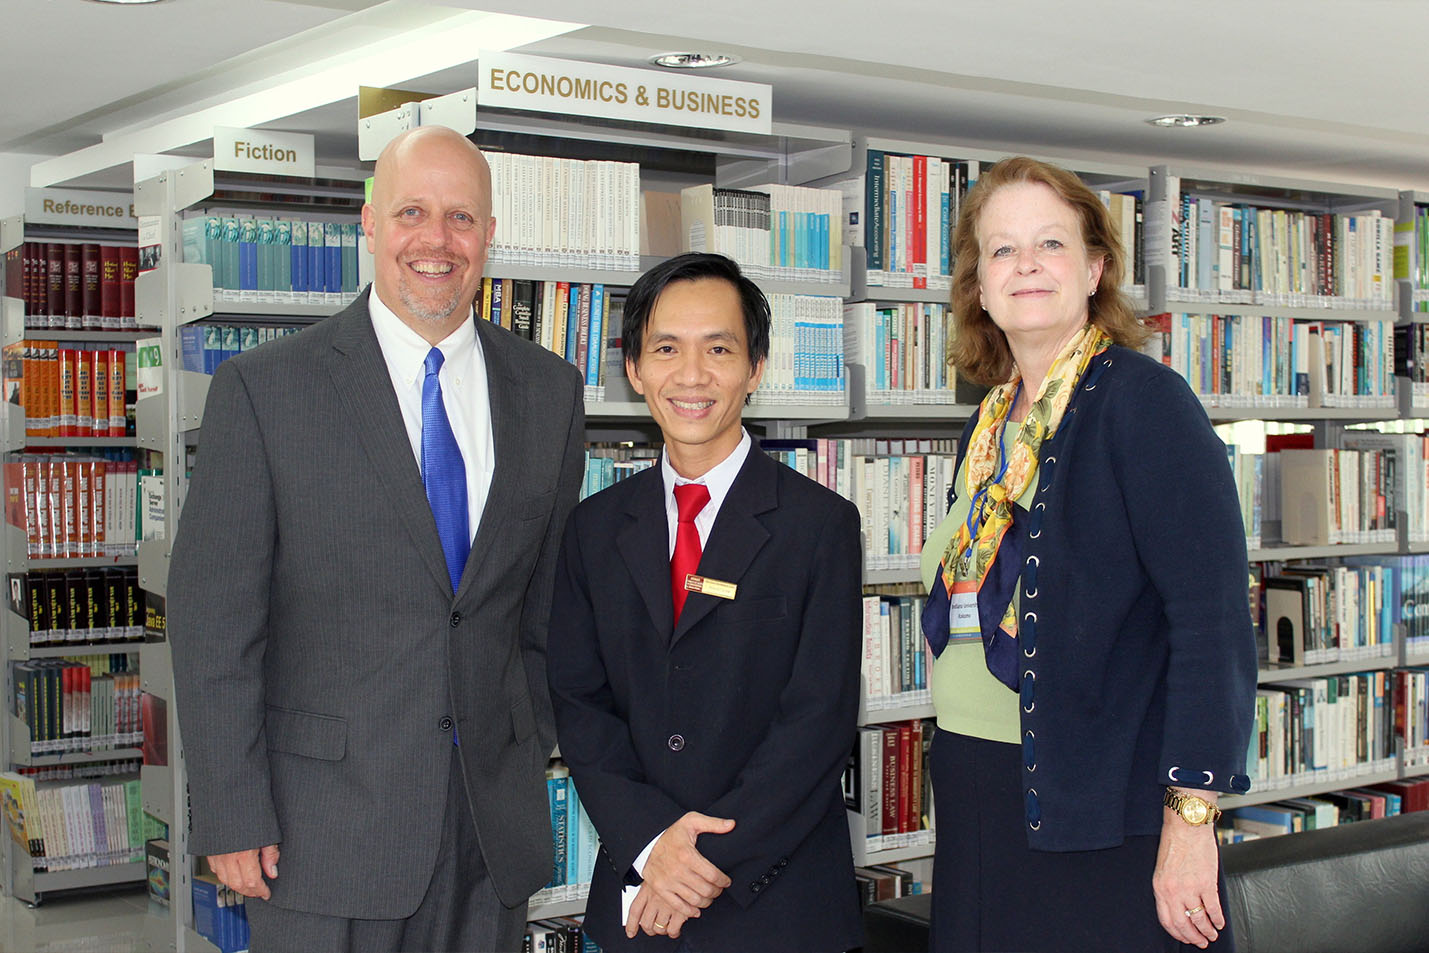 IUK visits and works with The Saigon International University